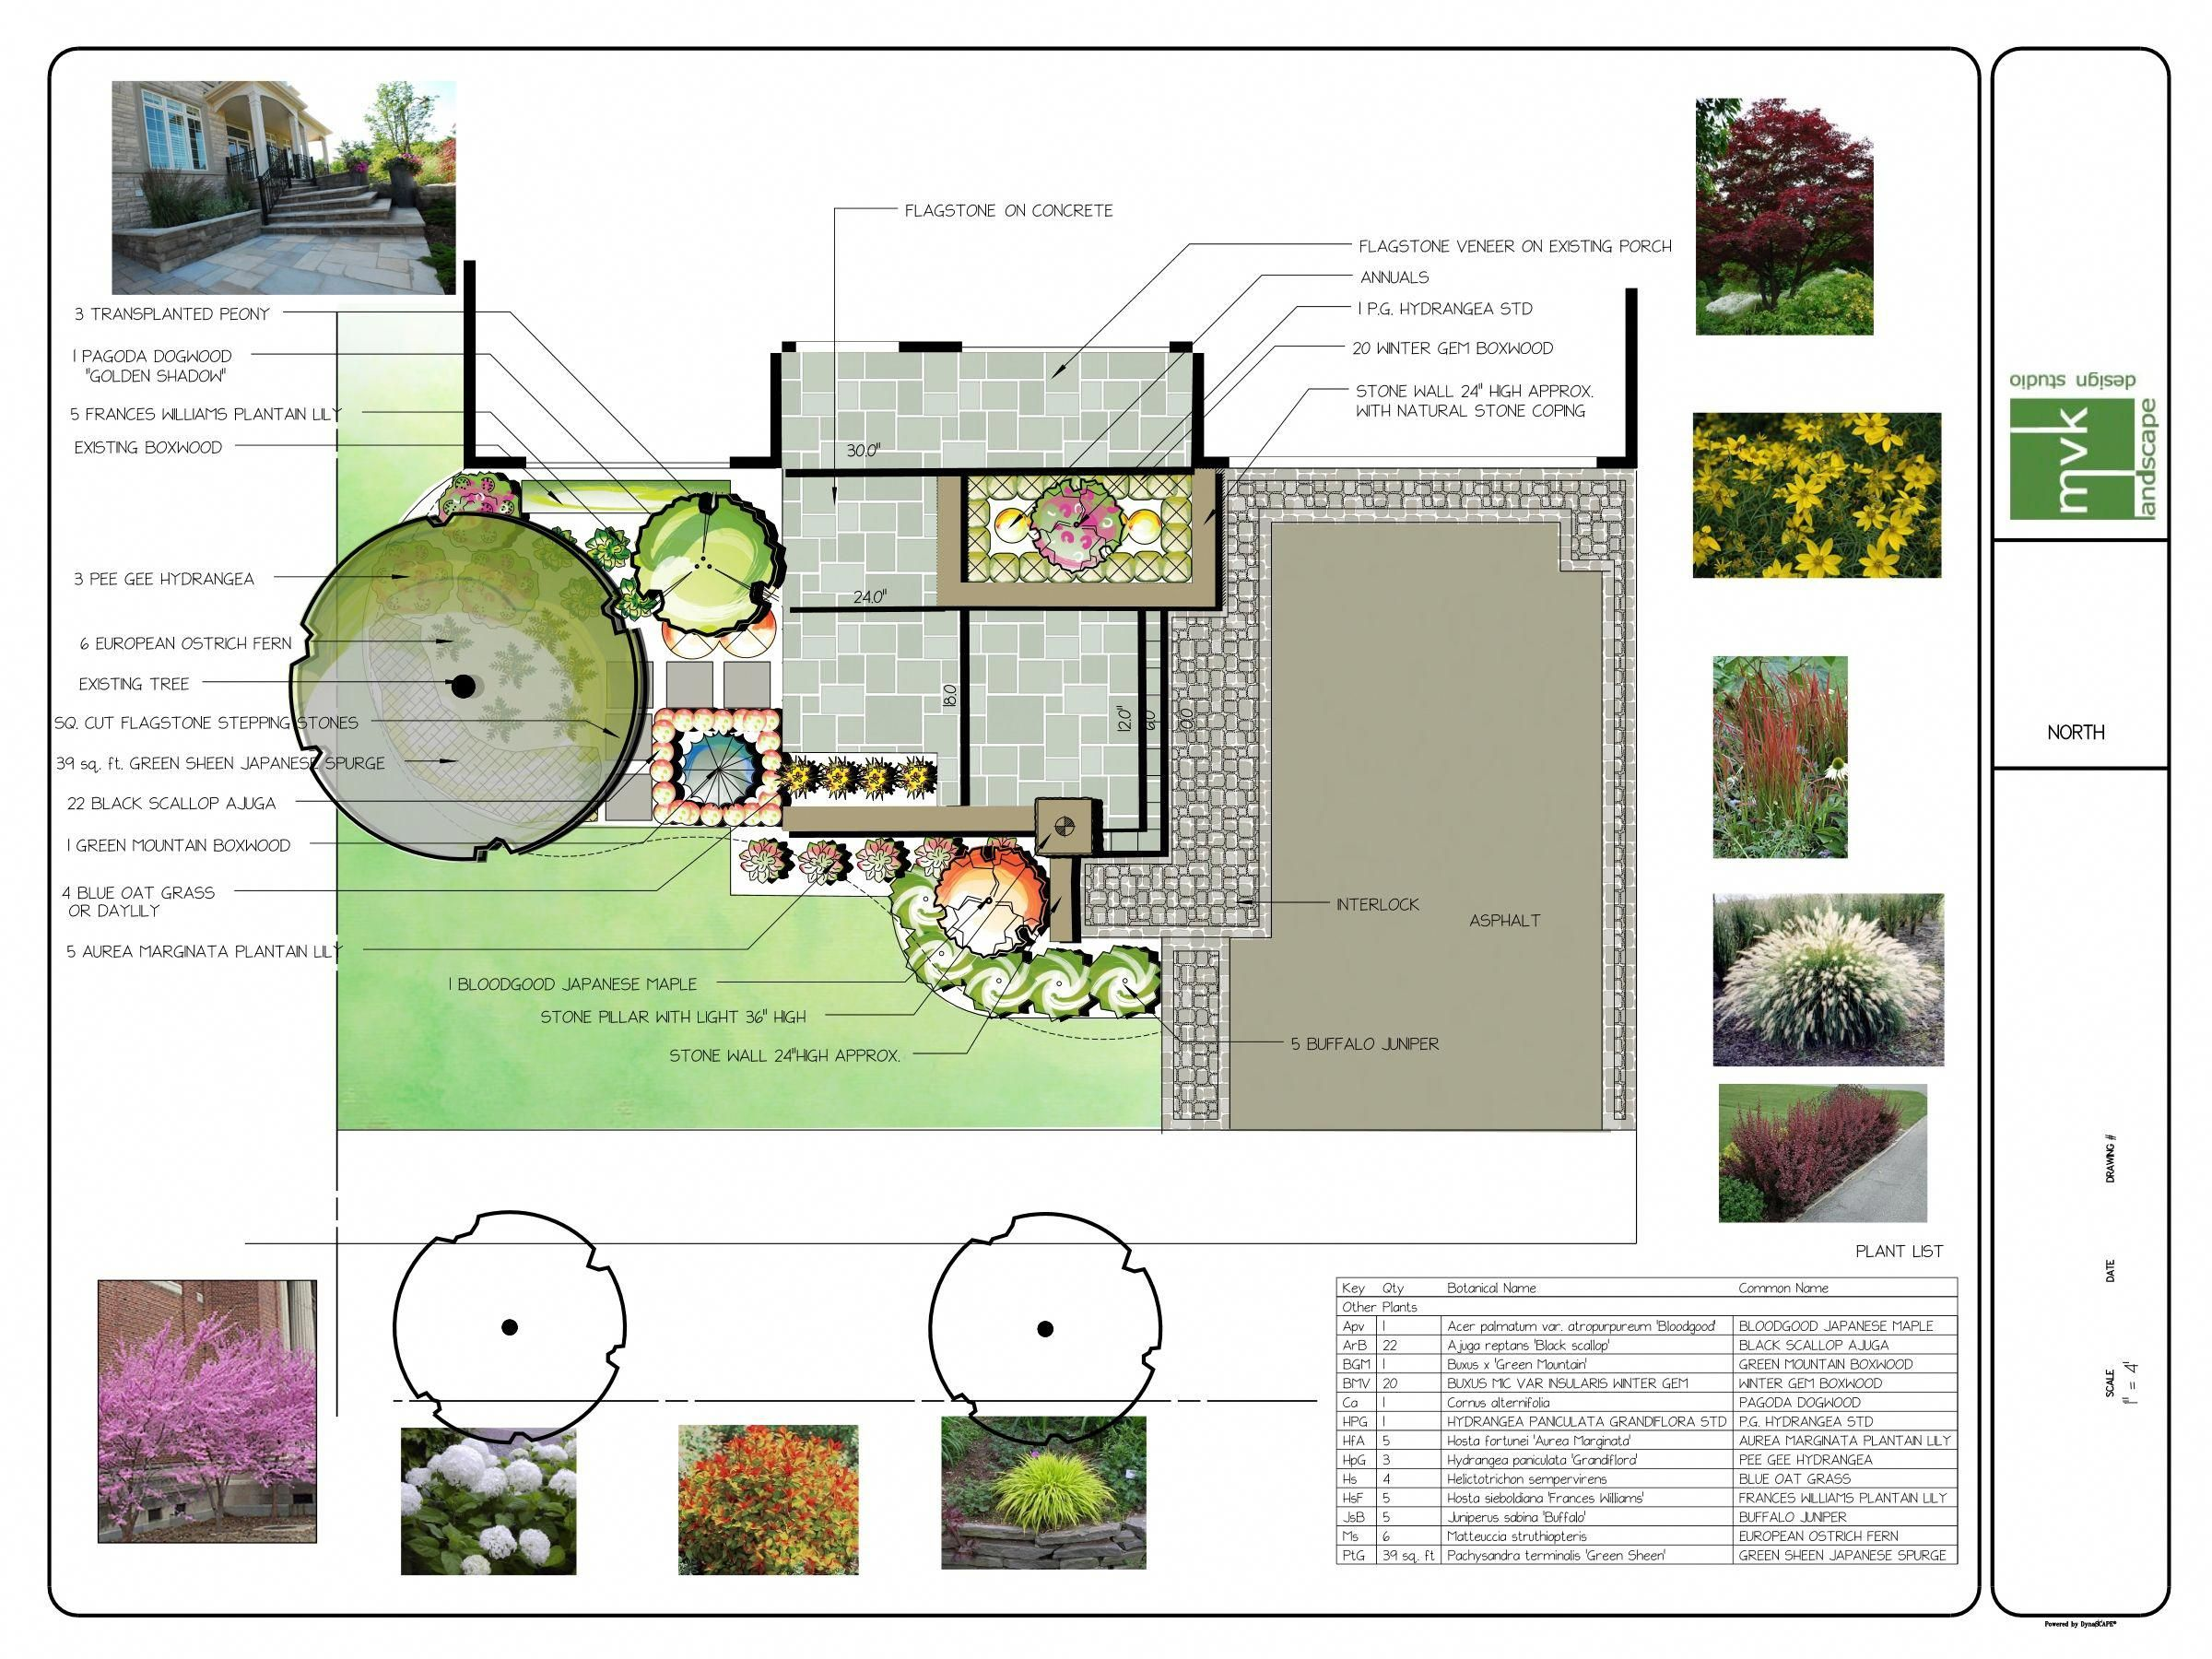 Pin by JoanneGMera196508 on Gardening Planner Software ...